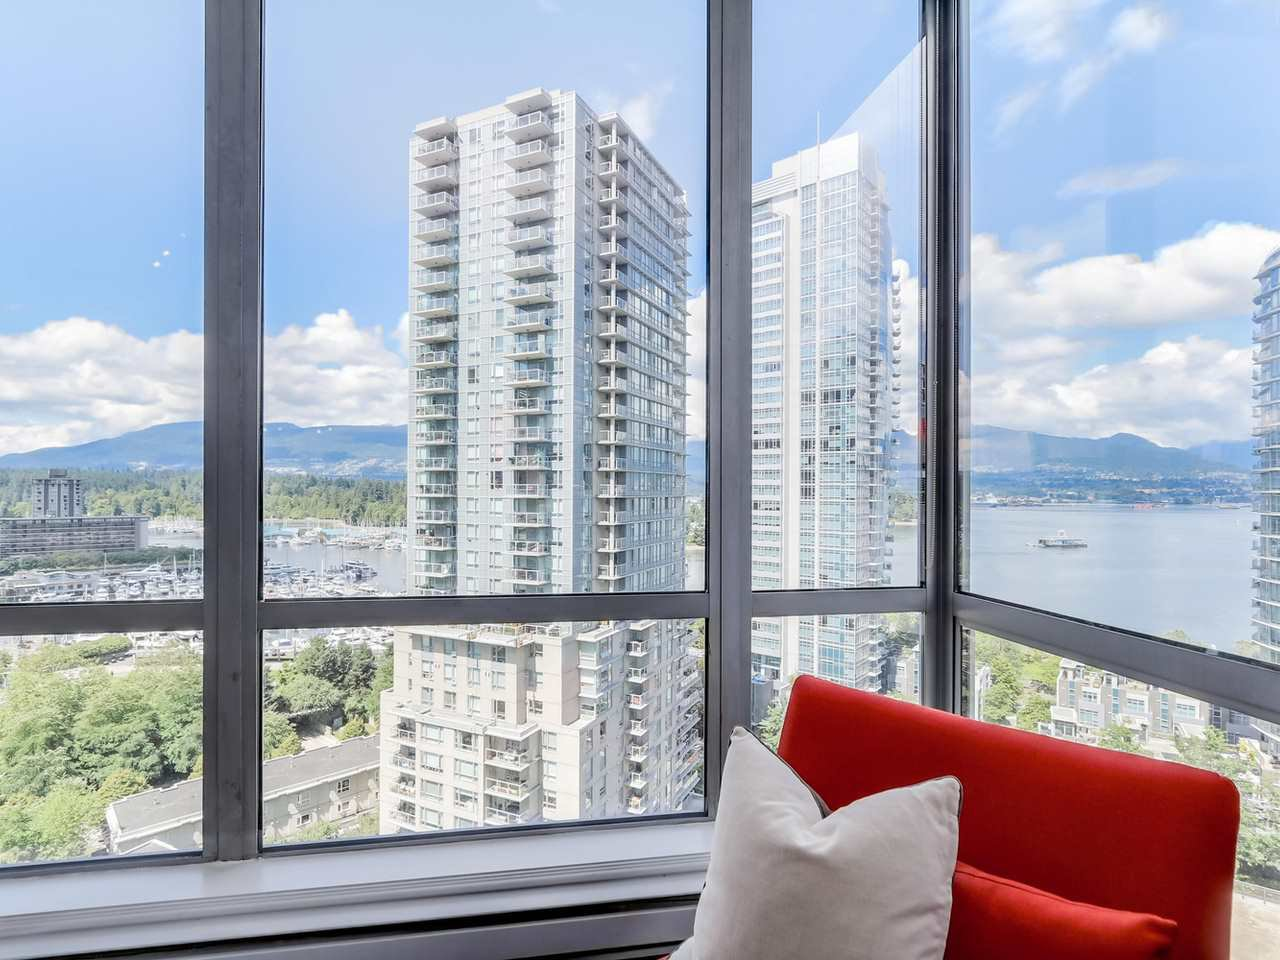 Main Photo: 1401 1228 W HASTINGS STREET in : Coal Harbour Condo for sale : MLS®# R2103469